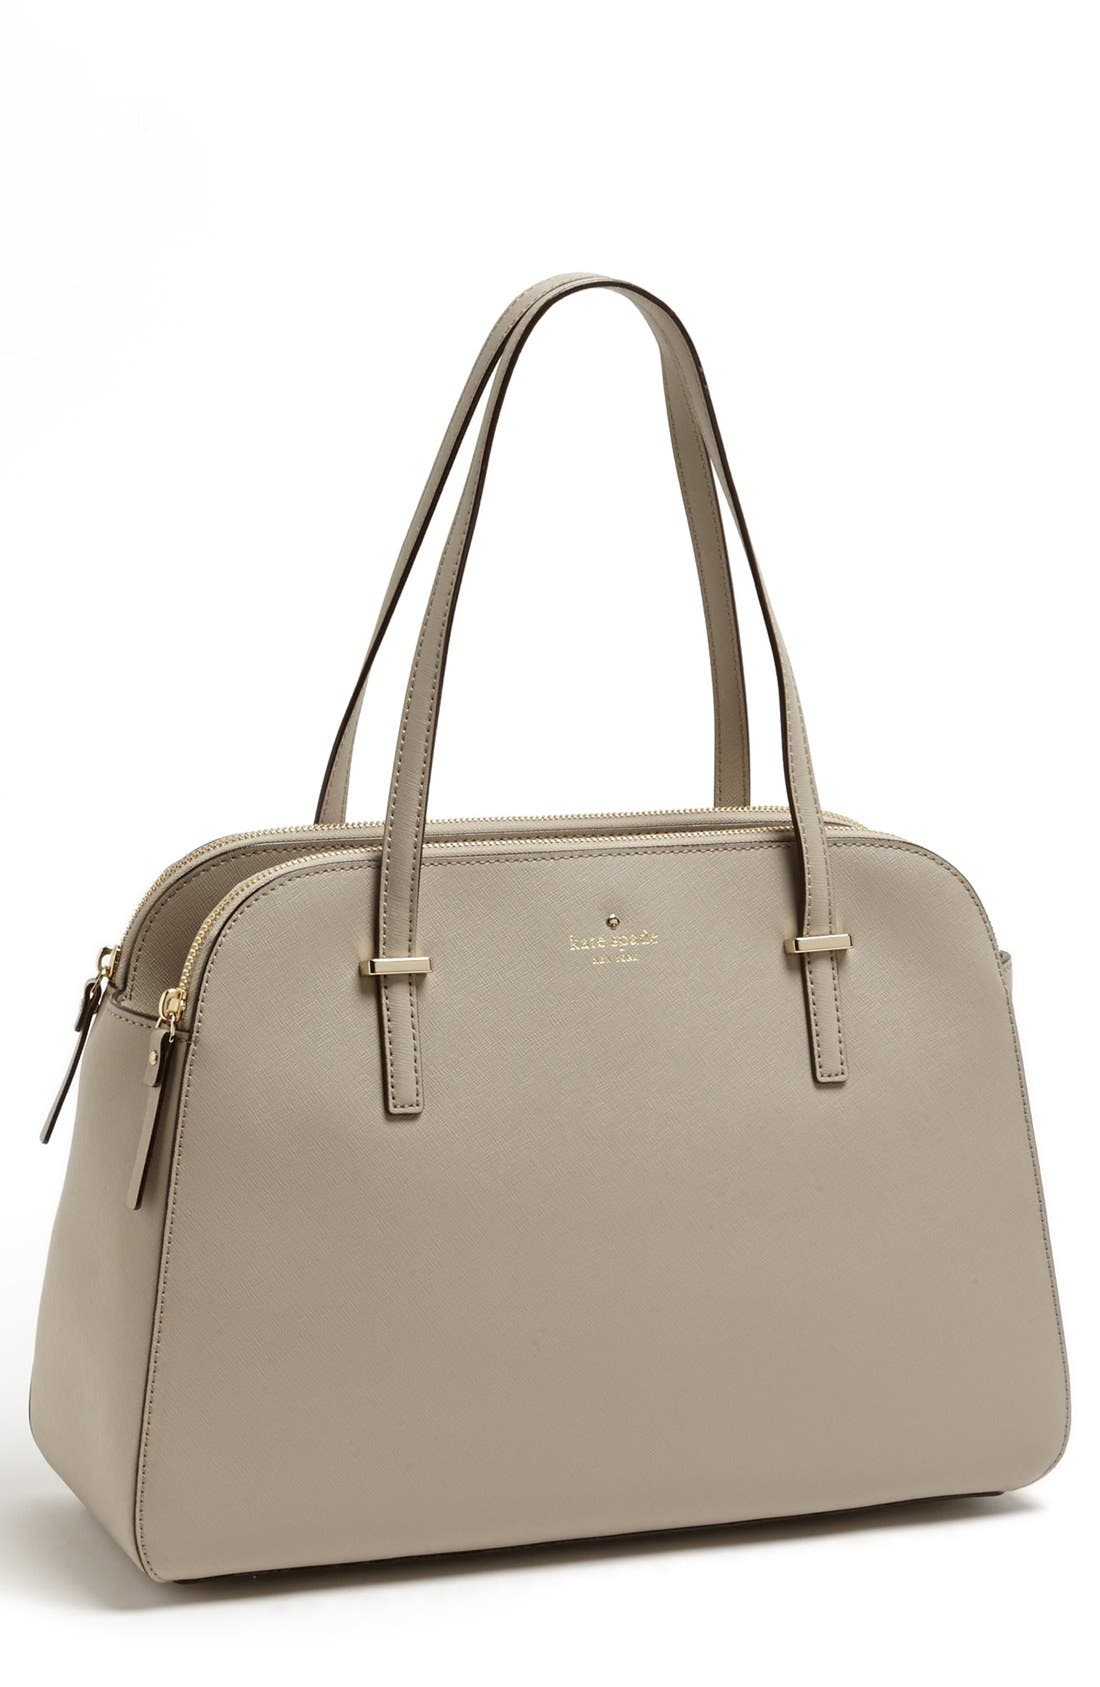 Alternate Image 1 Selected - kate spade new york 'cedar street - elissa' leather tote